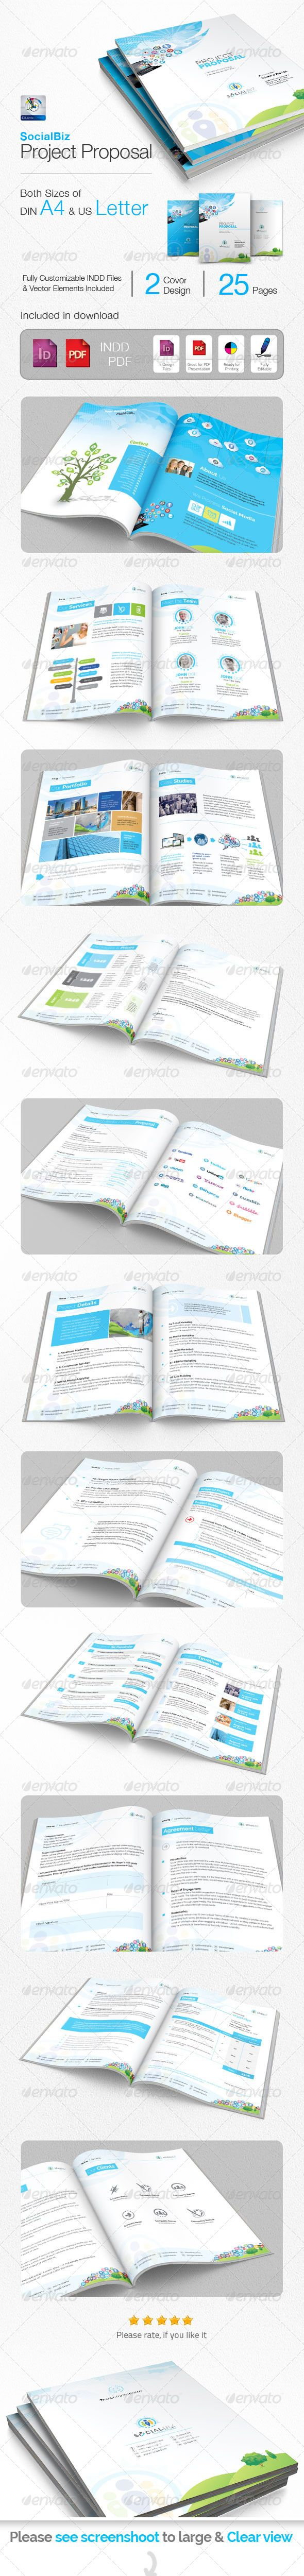 Professional Proposal Templates 298 Best Proposal Imagesgraphic Design Collection On Pinterest .